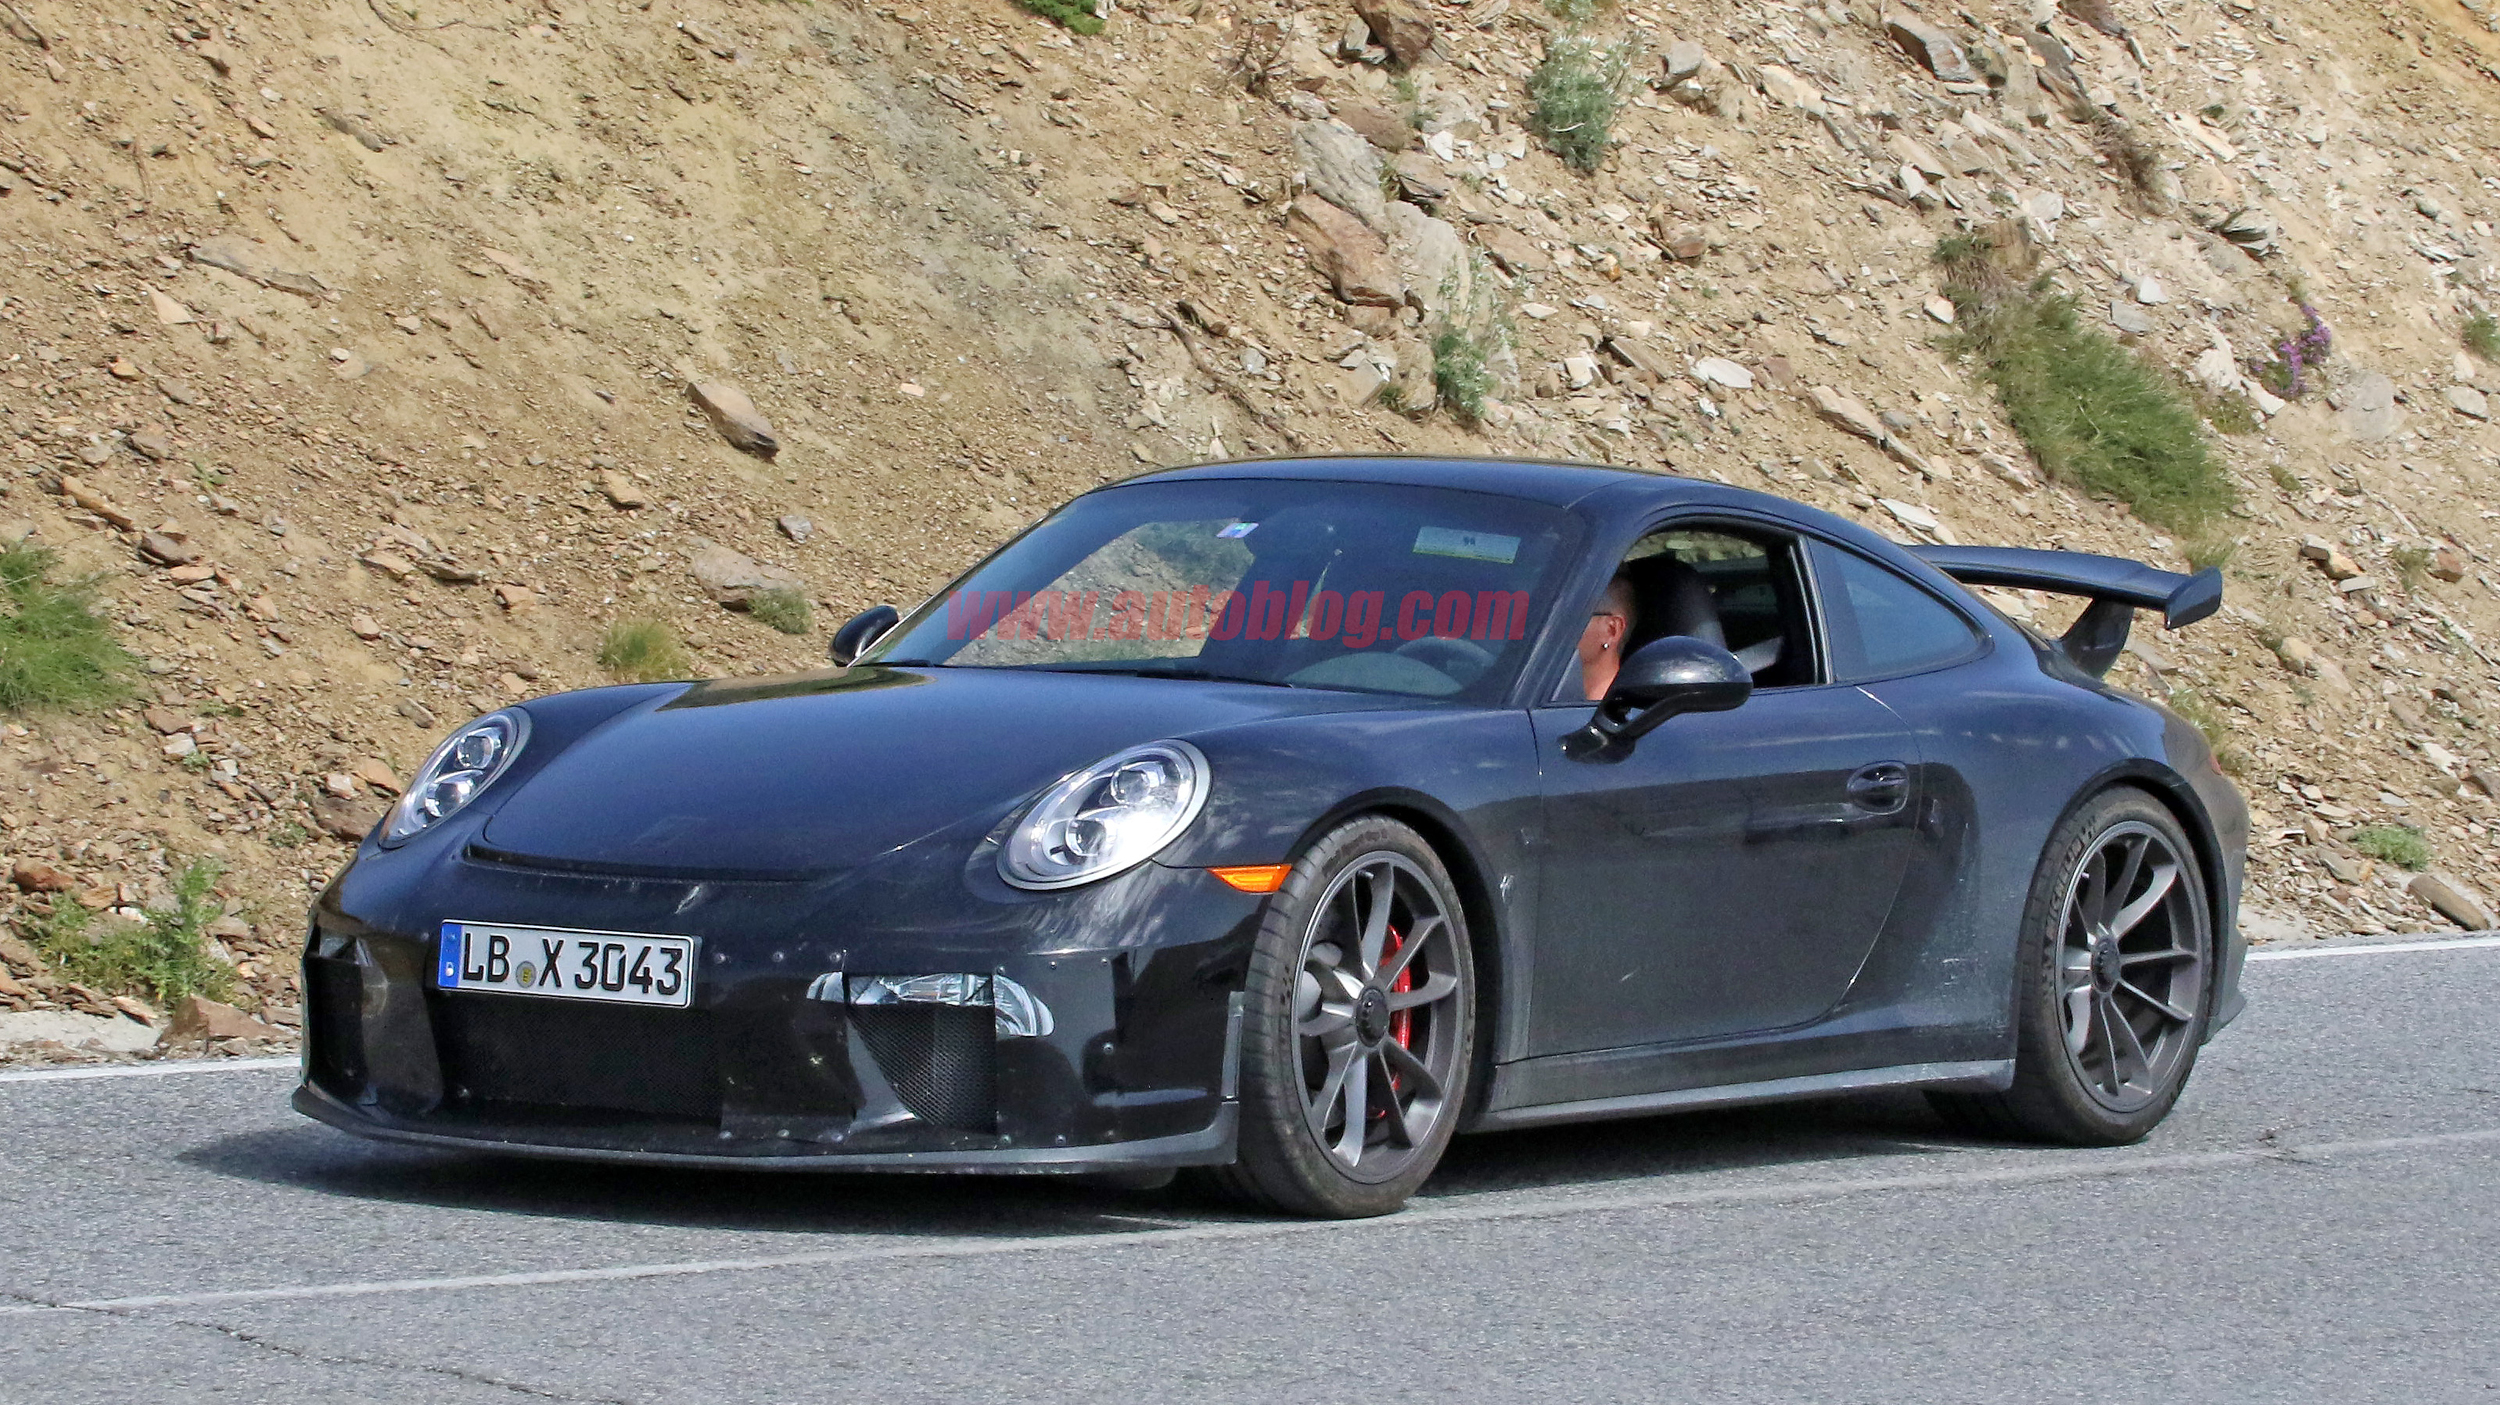 Proof the Porsche 911 GT3 may get a manual transmission ...